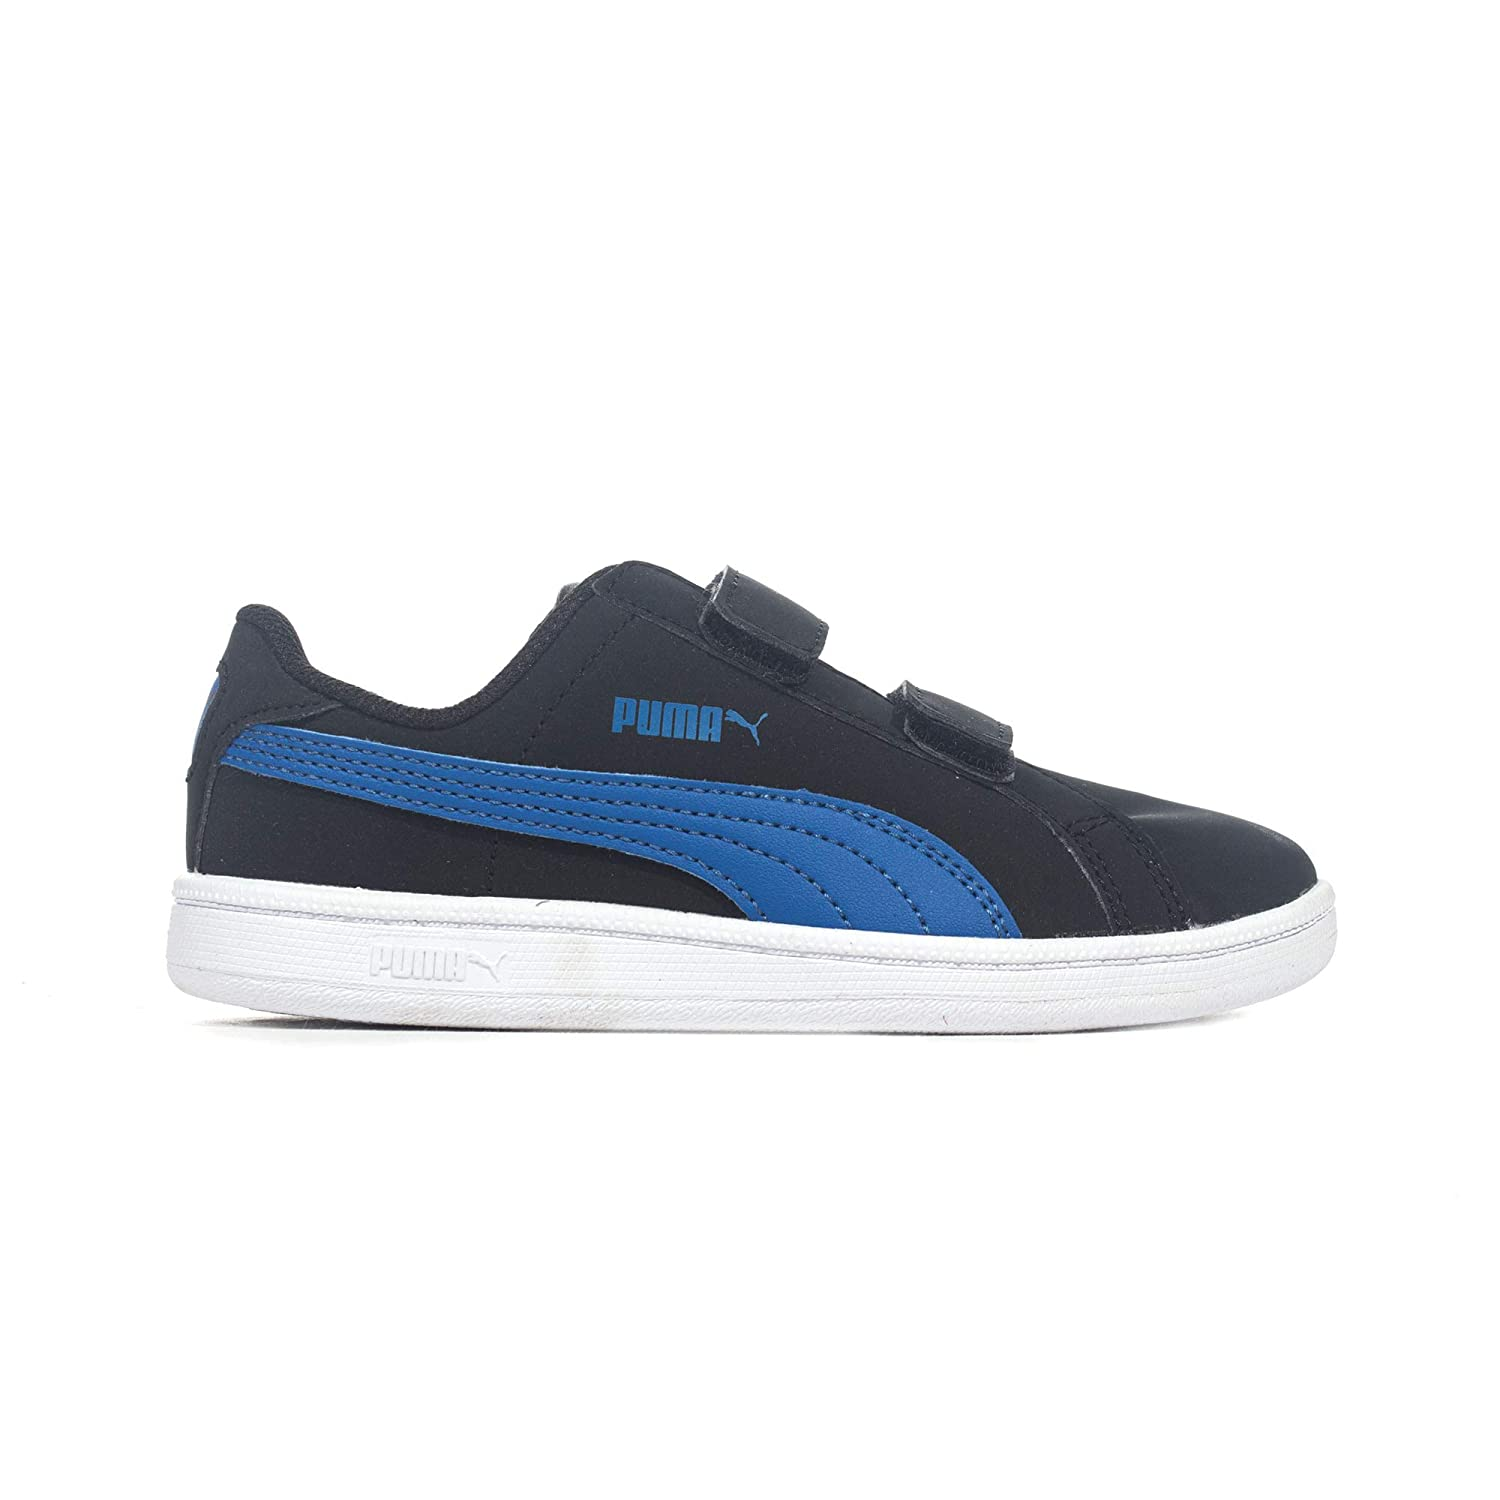 58368597067 Puma Smash Fun Junior Kids Nubuck Sports Shoe Black Blue - UK 11.5   Amazon.co.uk  Shoes   Bags